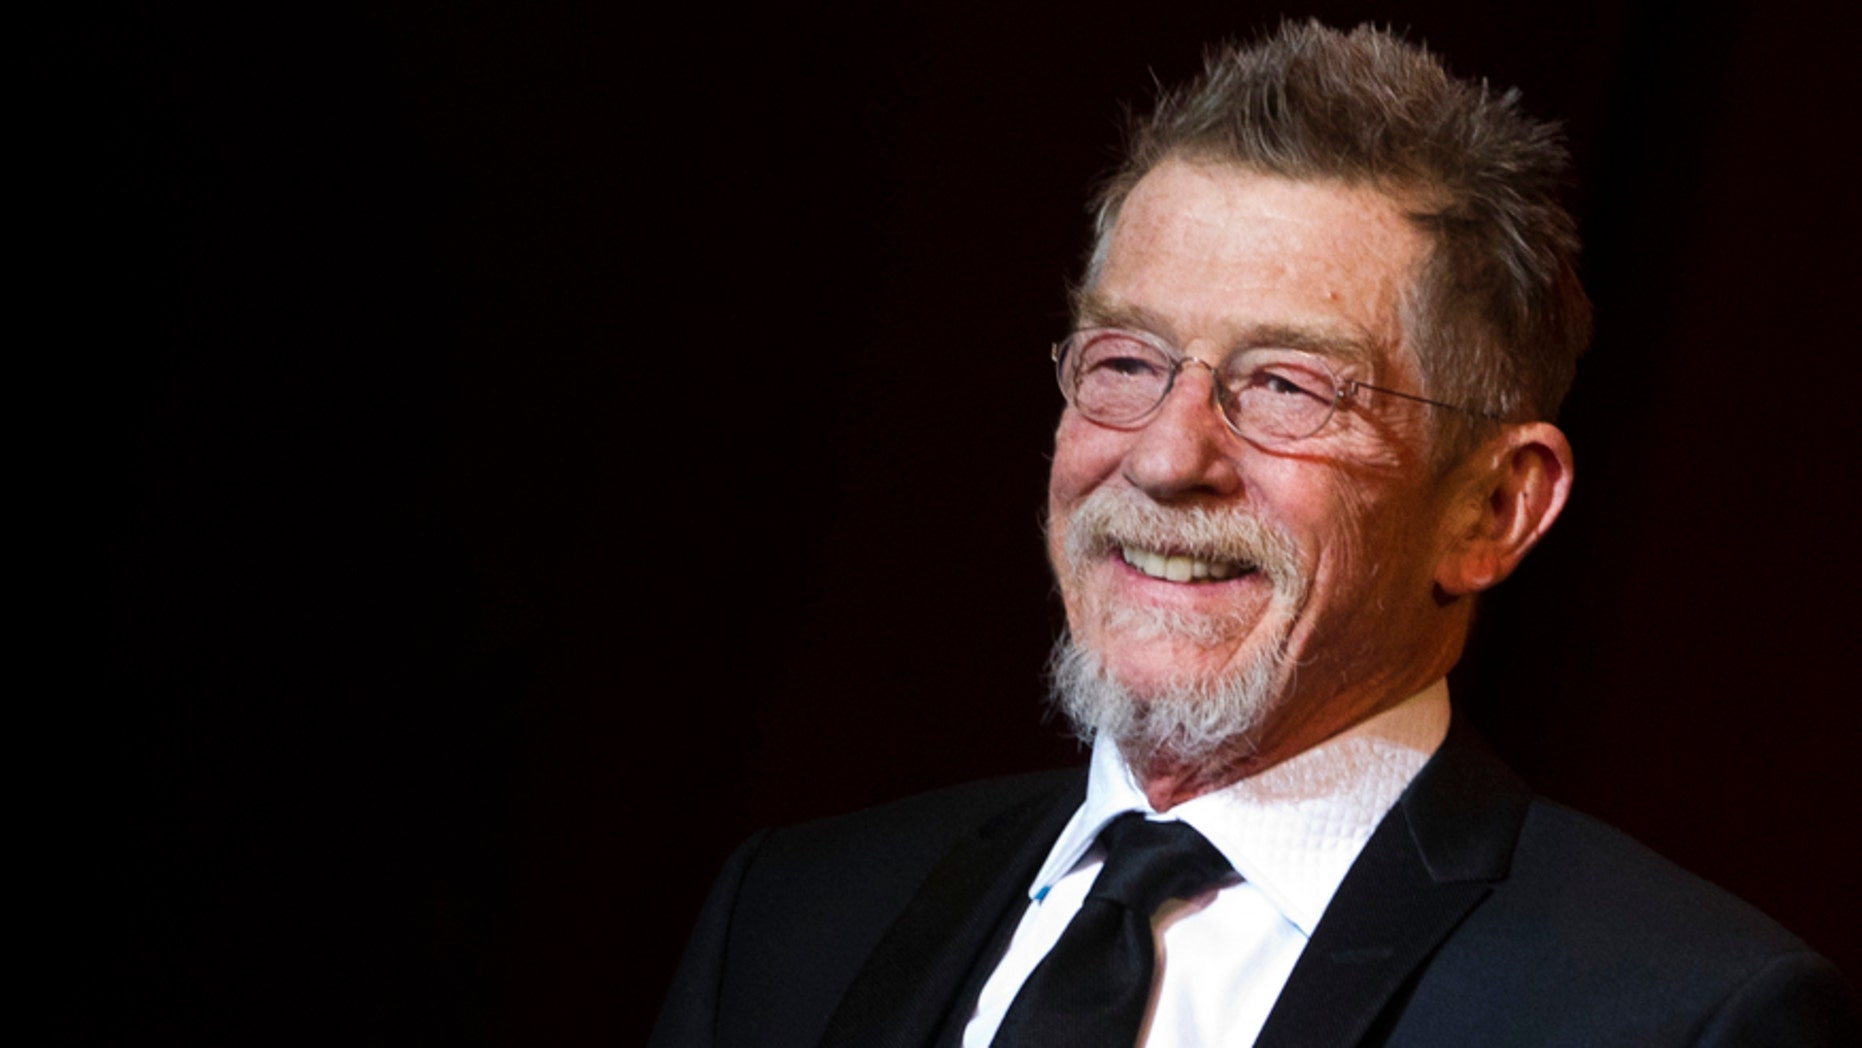 British actor John Hurt arrives on stage as a patron of the Shooting Star award, a prize for the ten most promising young European actors, at the 62th Berlinale International Film Festival in Berlin February 13, 2012.  REUTERS/Thomas Peter (GERMANY - Tags: ENTERTAINMENT) - RTR2XSV1